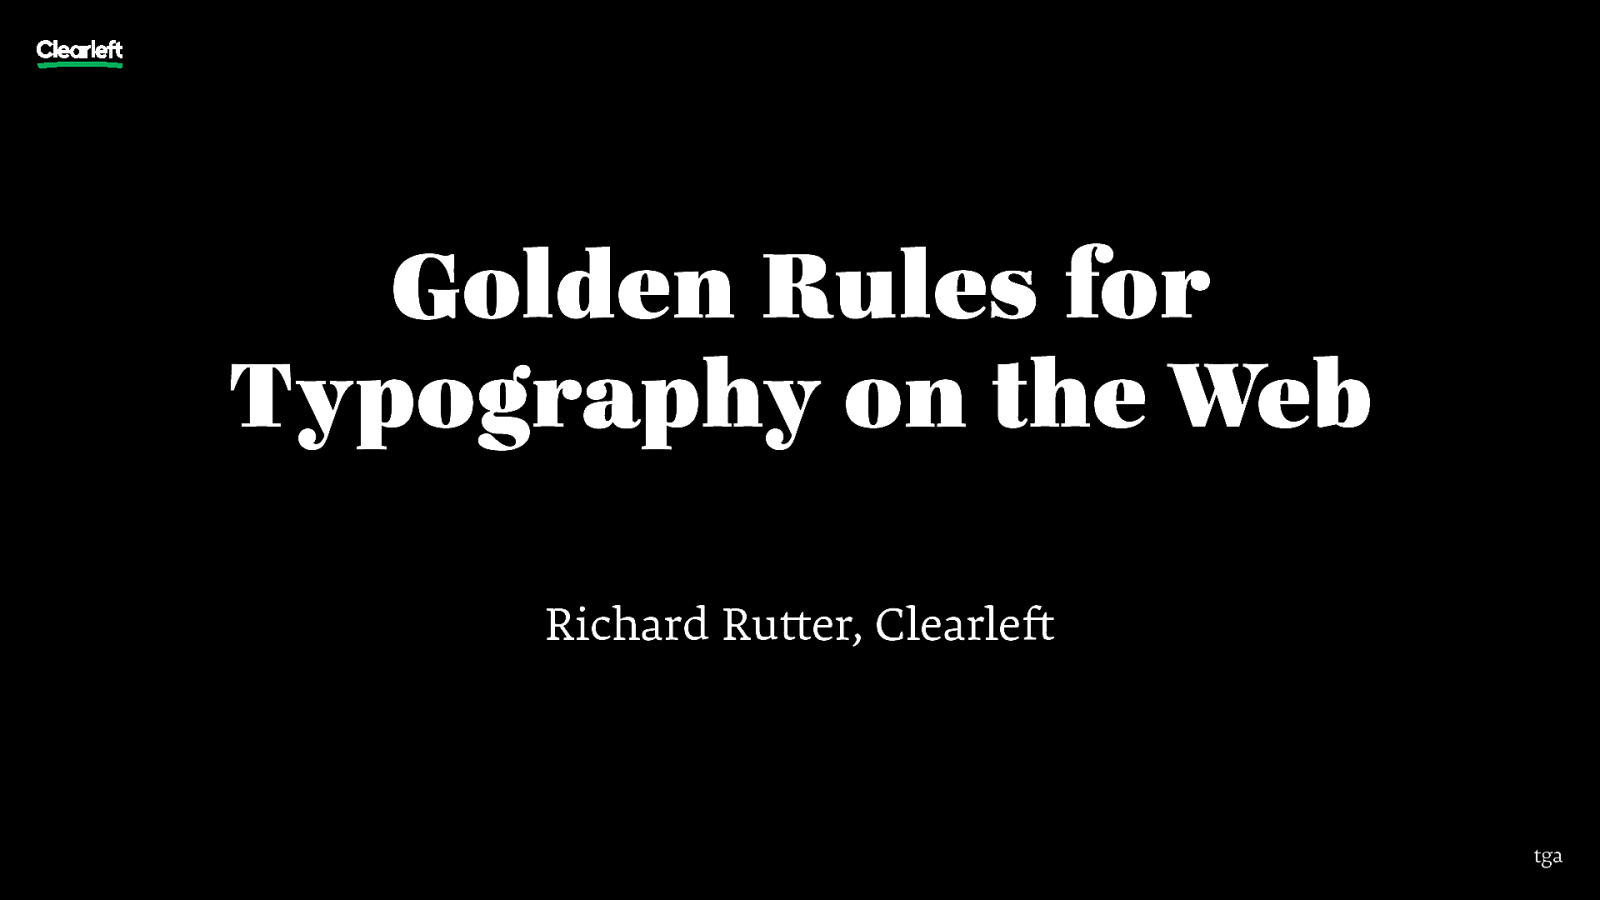 Golden Rules for Typography on the Web